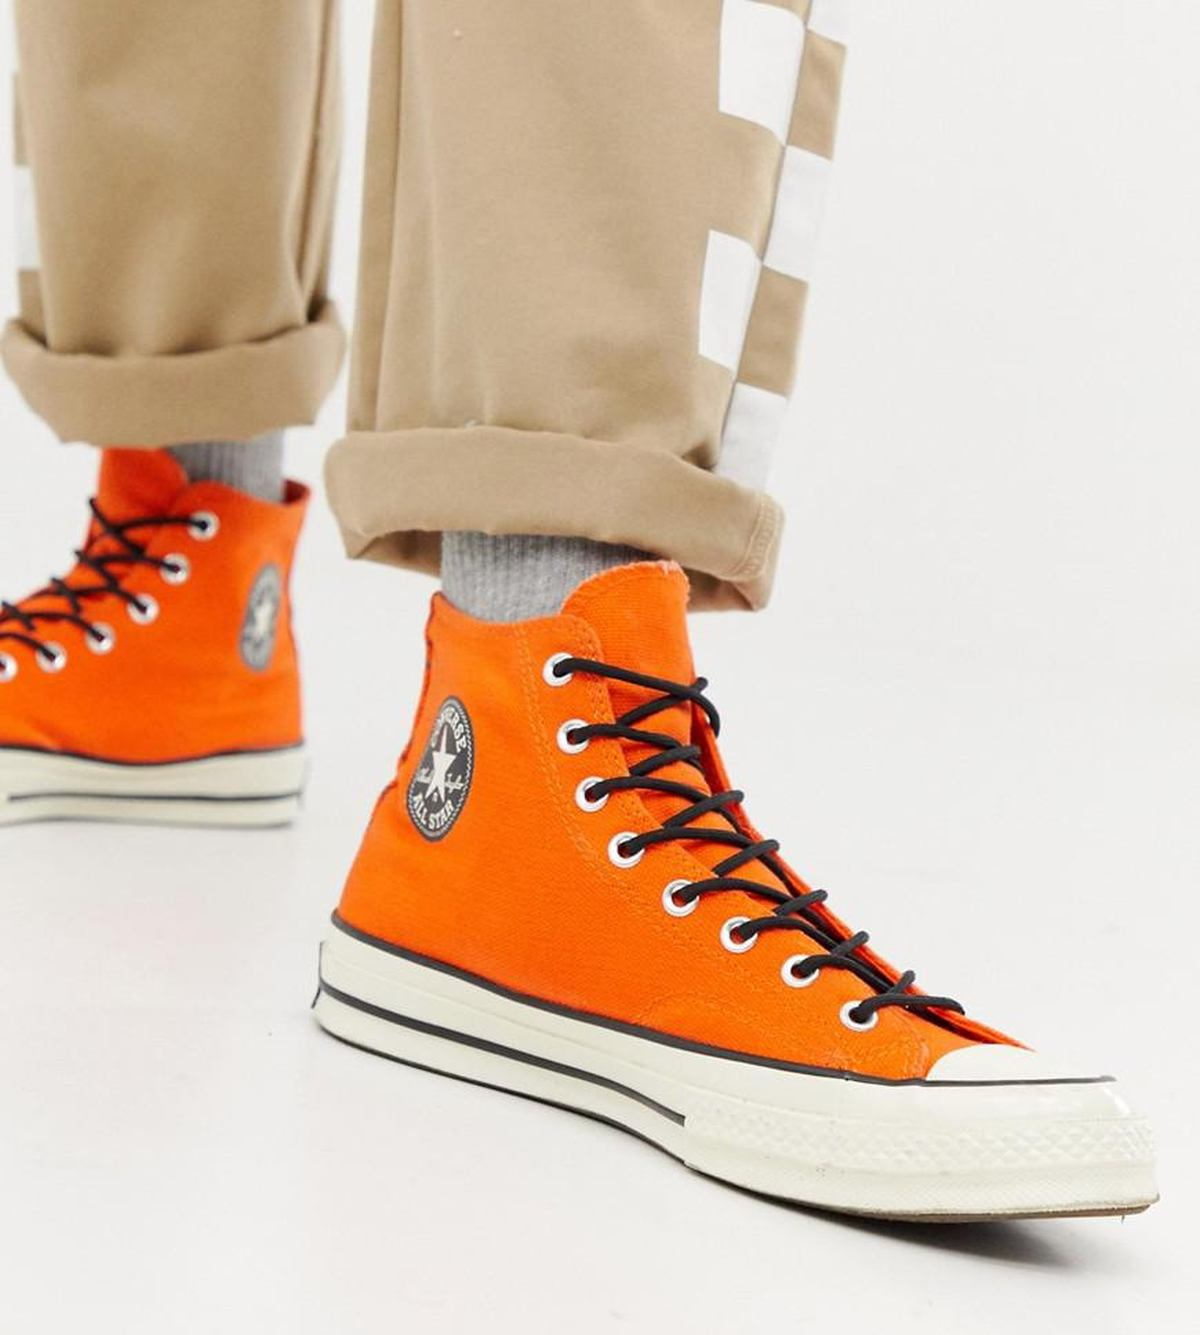 Converse Orange Chuck Taylor All Star 70 Waterproof Hi Trainers In Orange 162351c